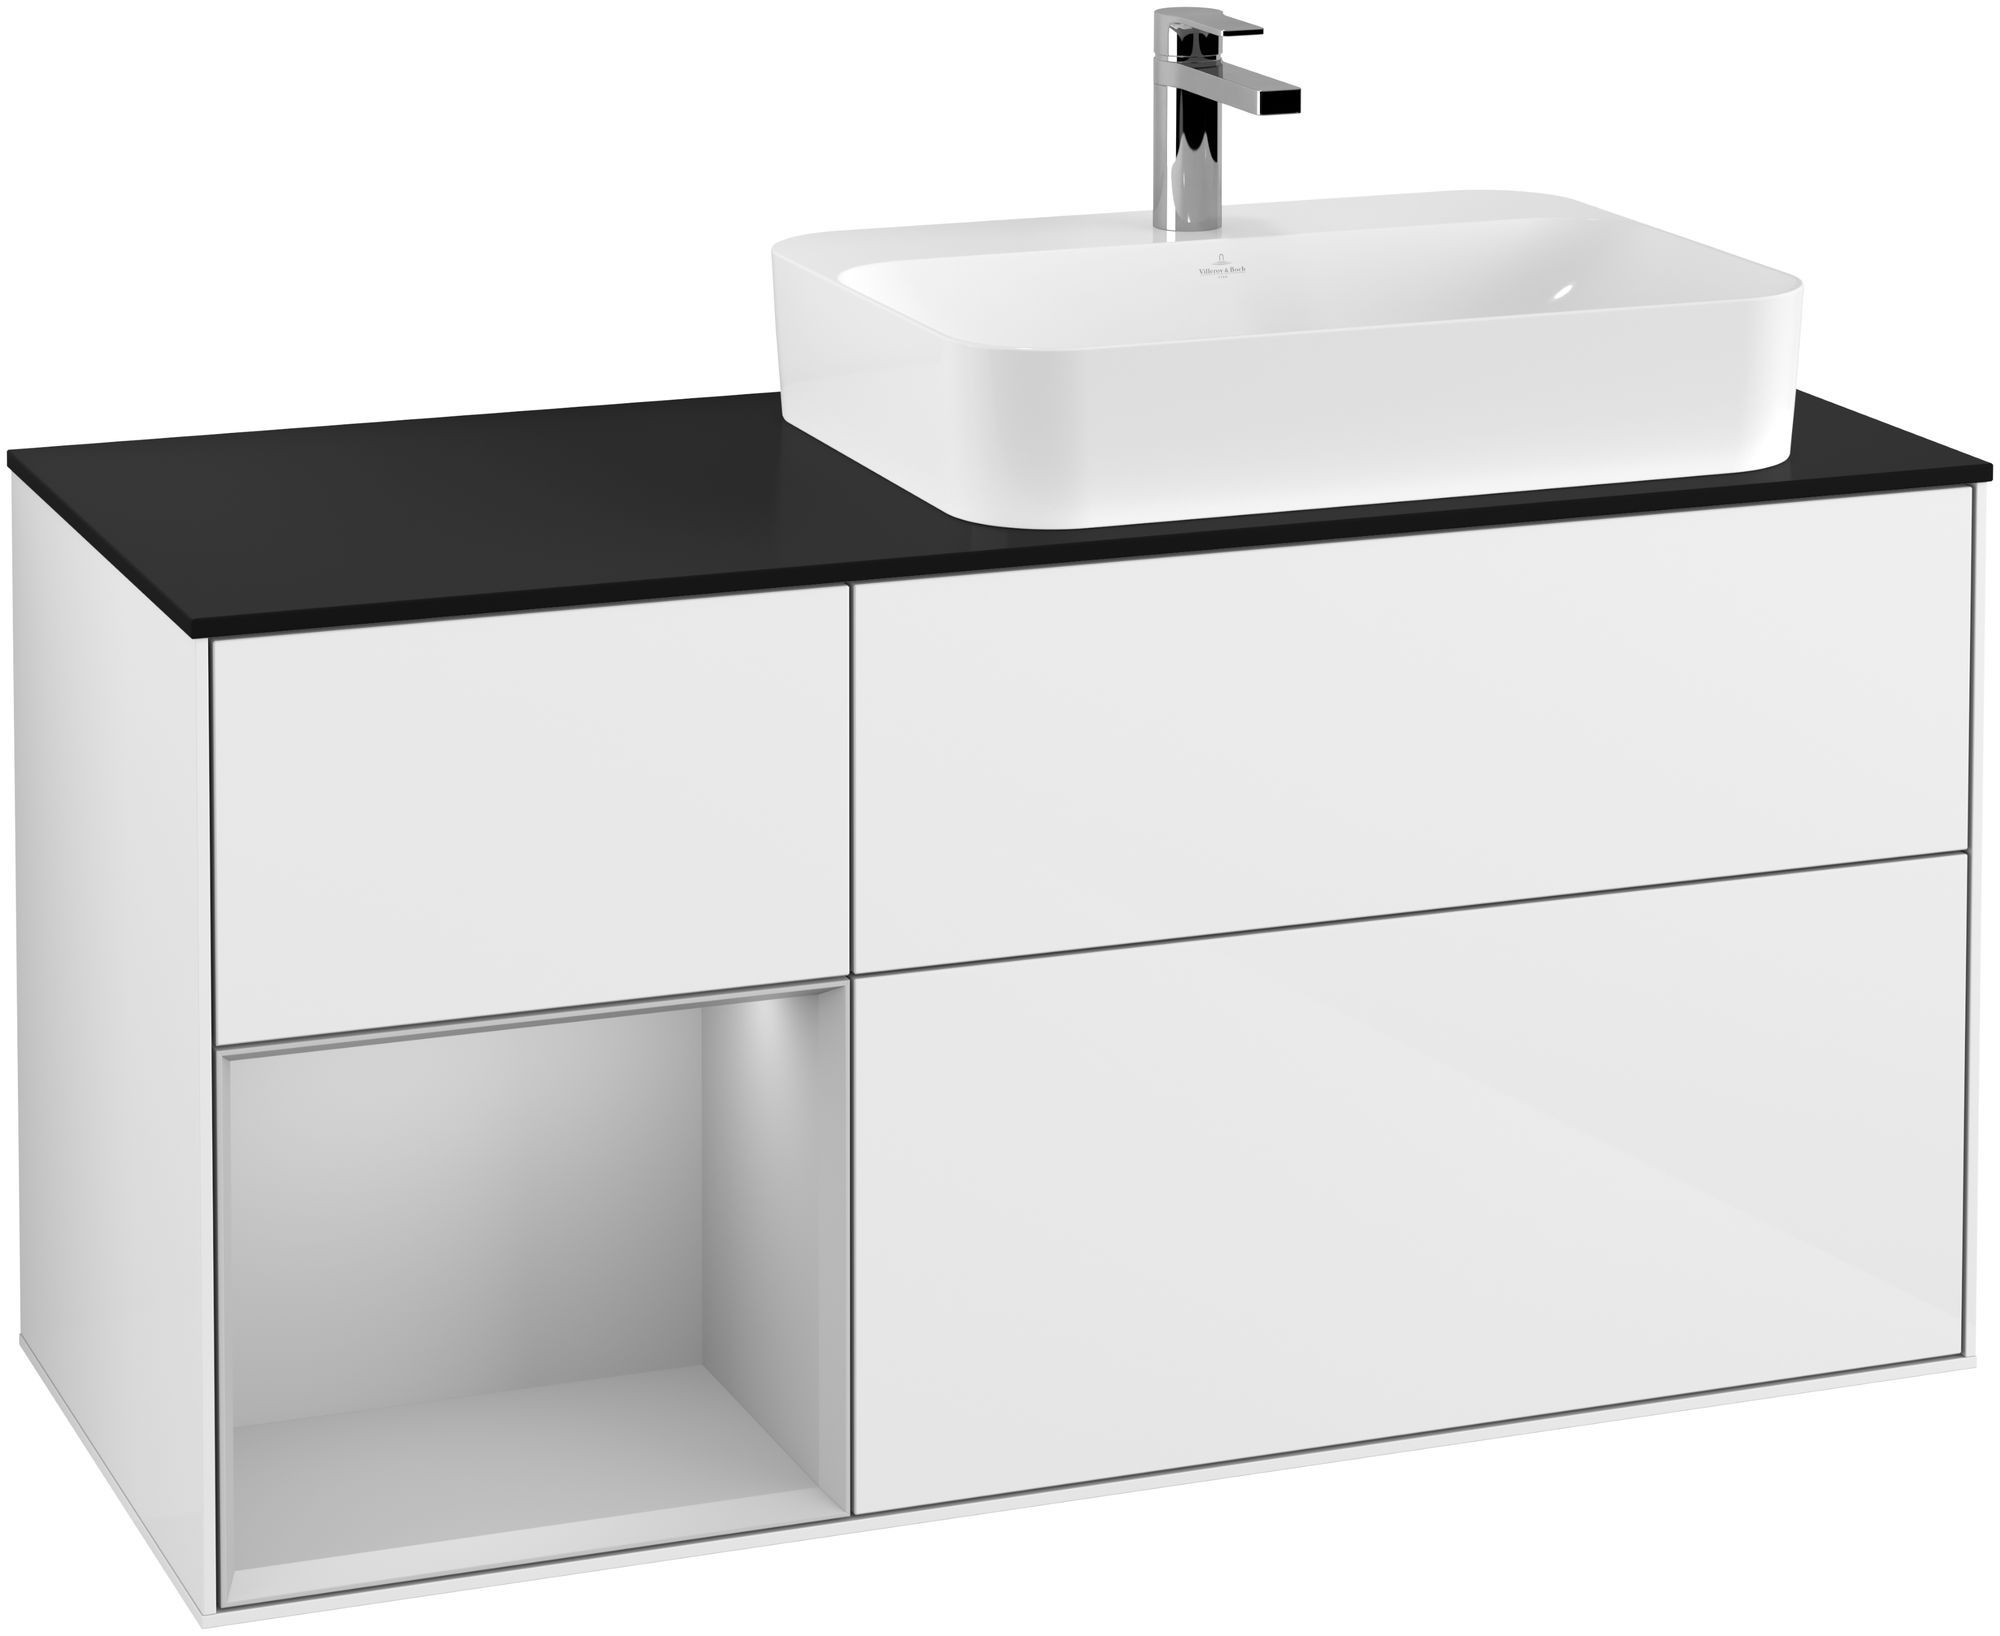 Villeroy & Boch Finion F39 Waschtischunterschrank mit Regalelement 3 Auszüge für WT rechts LED-Beleuchtung B:120xH:60,3xT:50,1cm Front, Korpus: Glossy White Lack, Regal: Light Grey Matt, Glasplatte: Black Matt F392GJGF